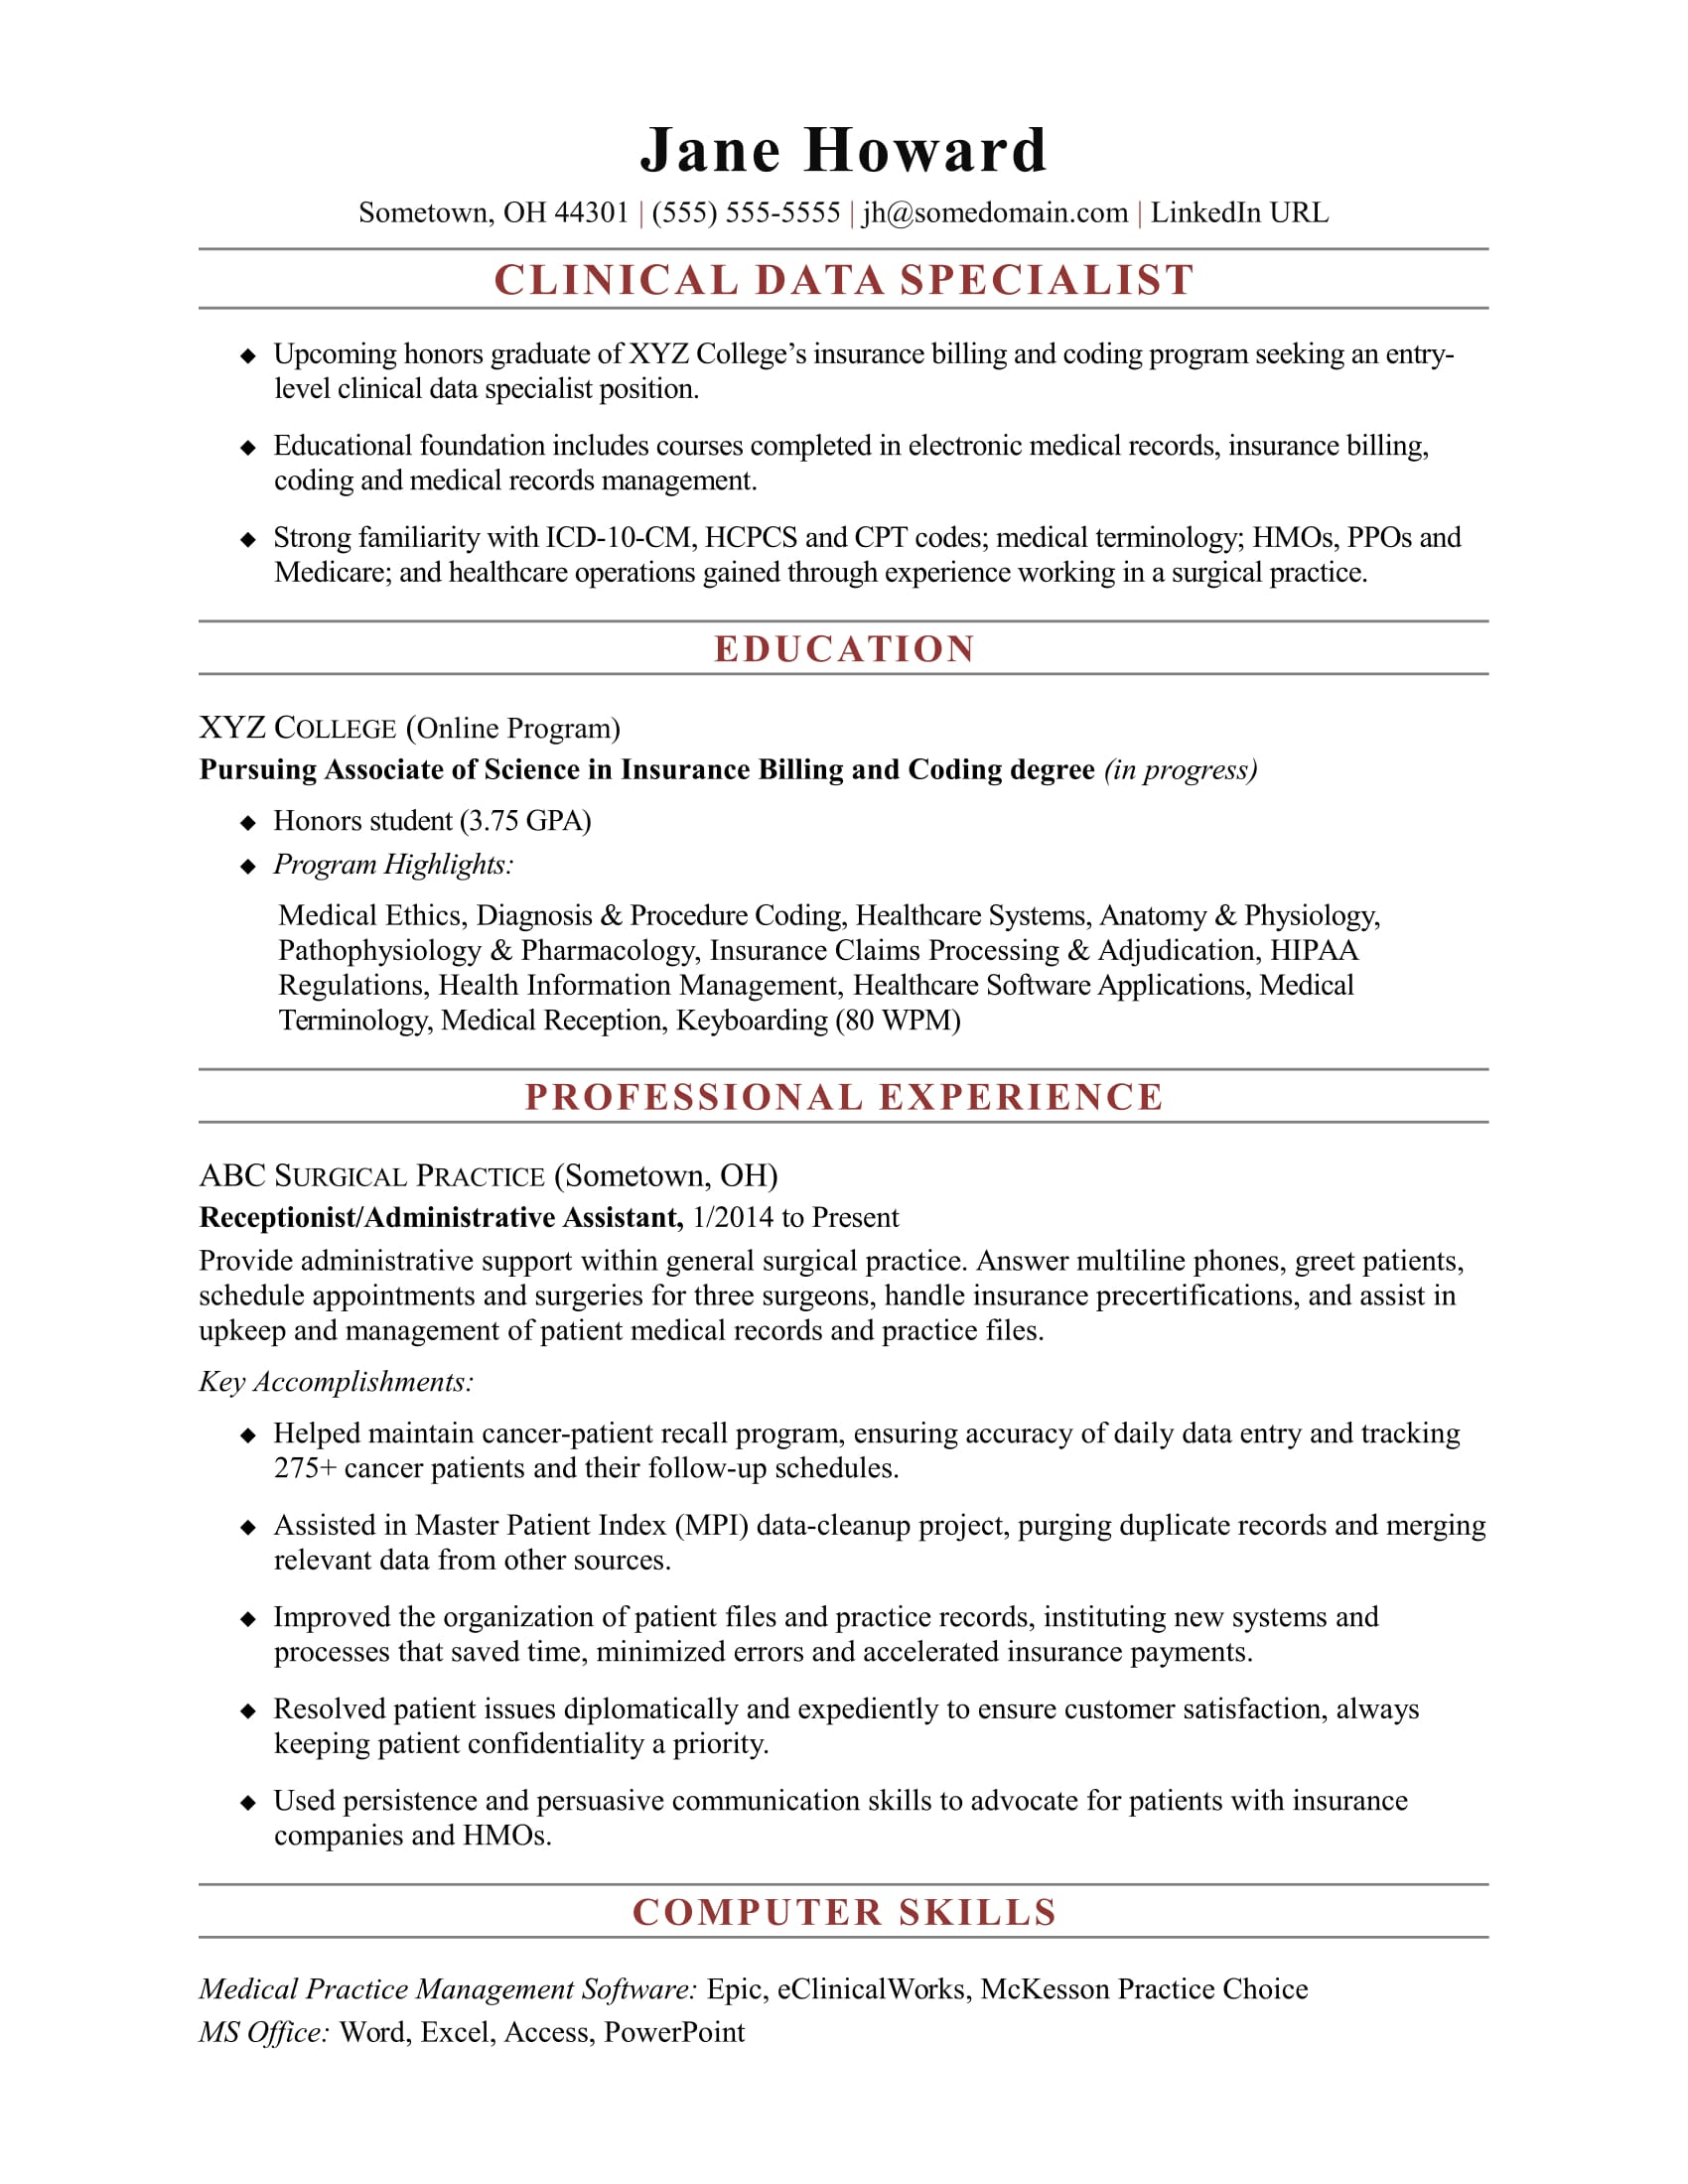 Sample Resume For An Entry Level Clinical Data Specialist  Medical Billing And Coding Resume